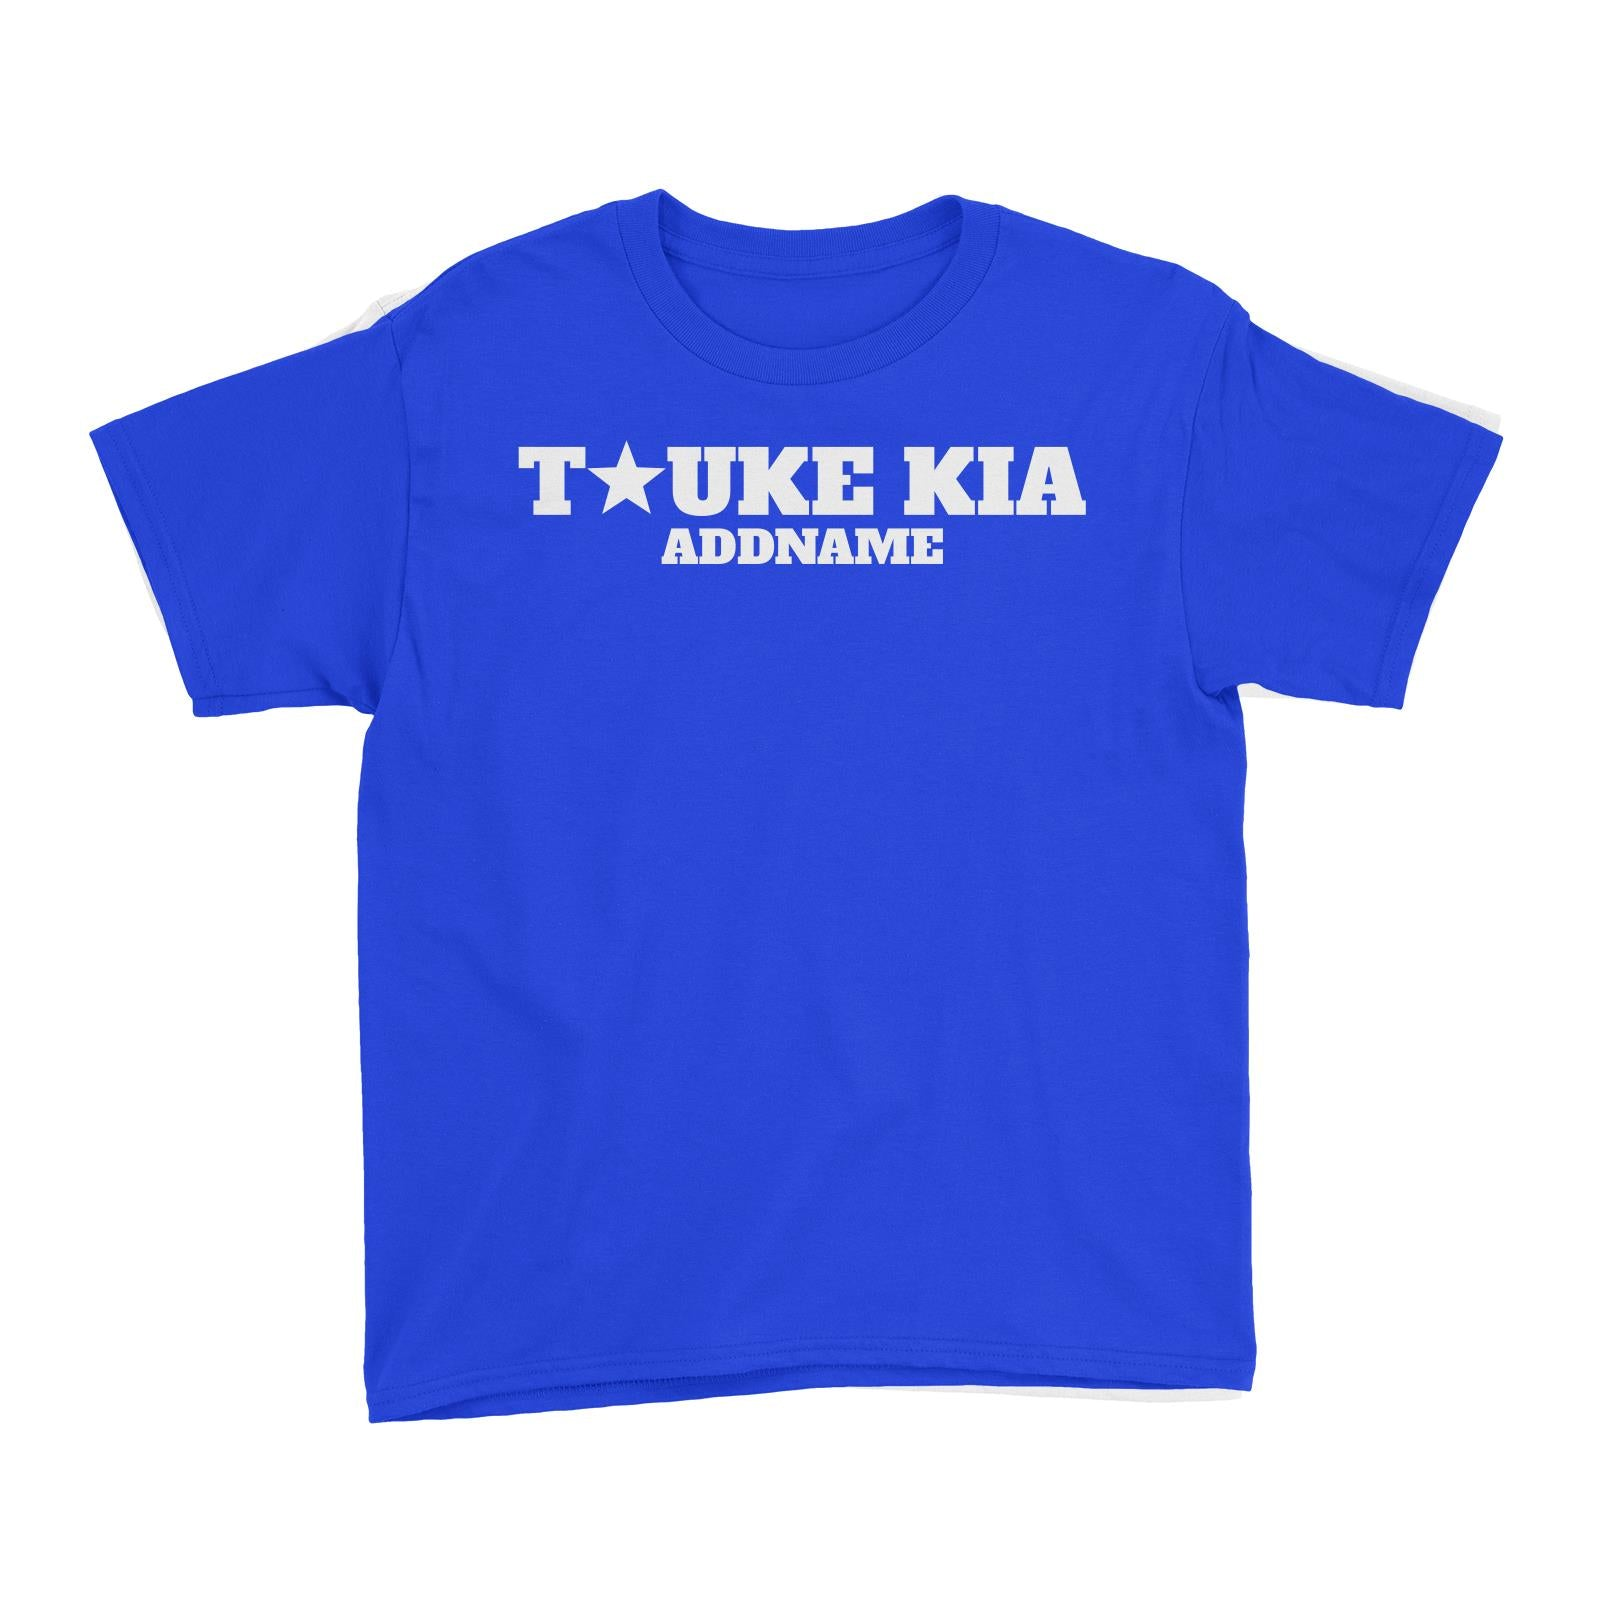 Tauke Kia Star Kid's T-Shirt